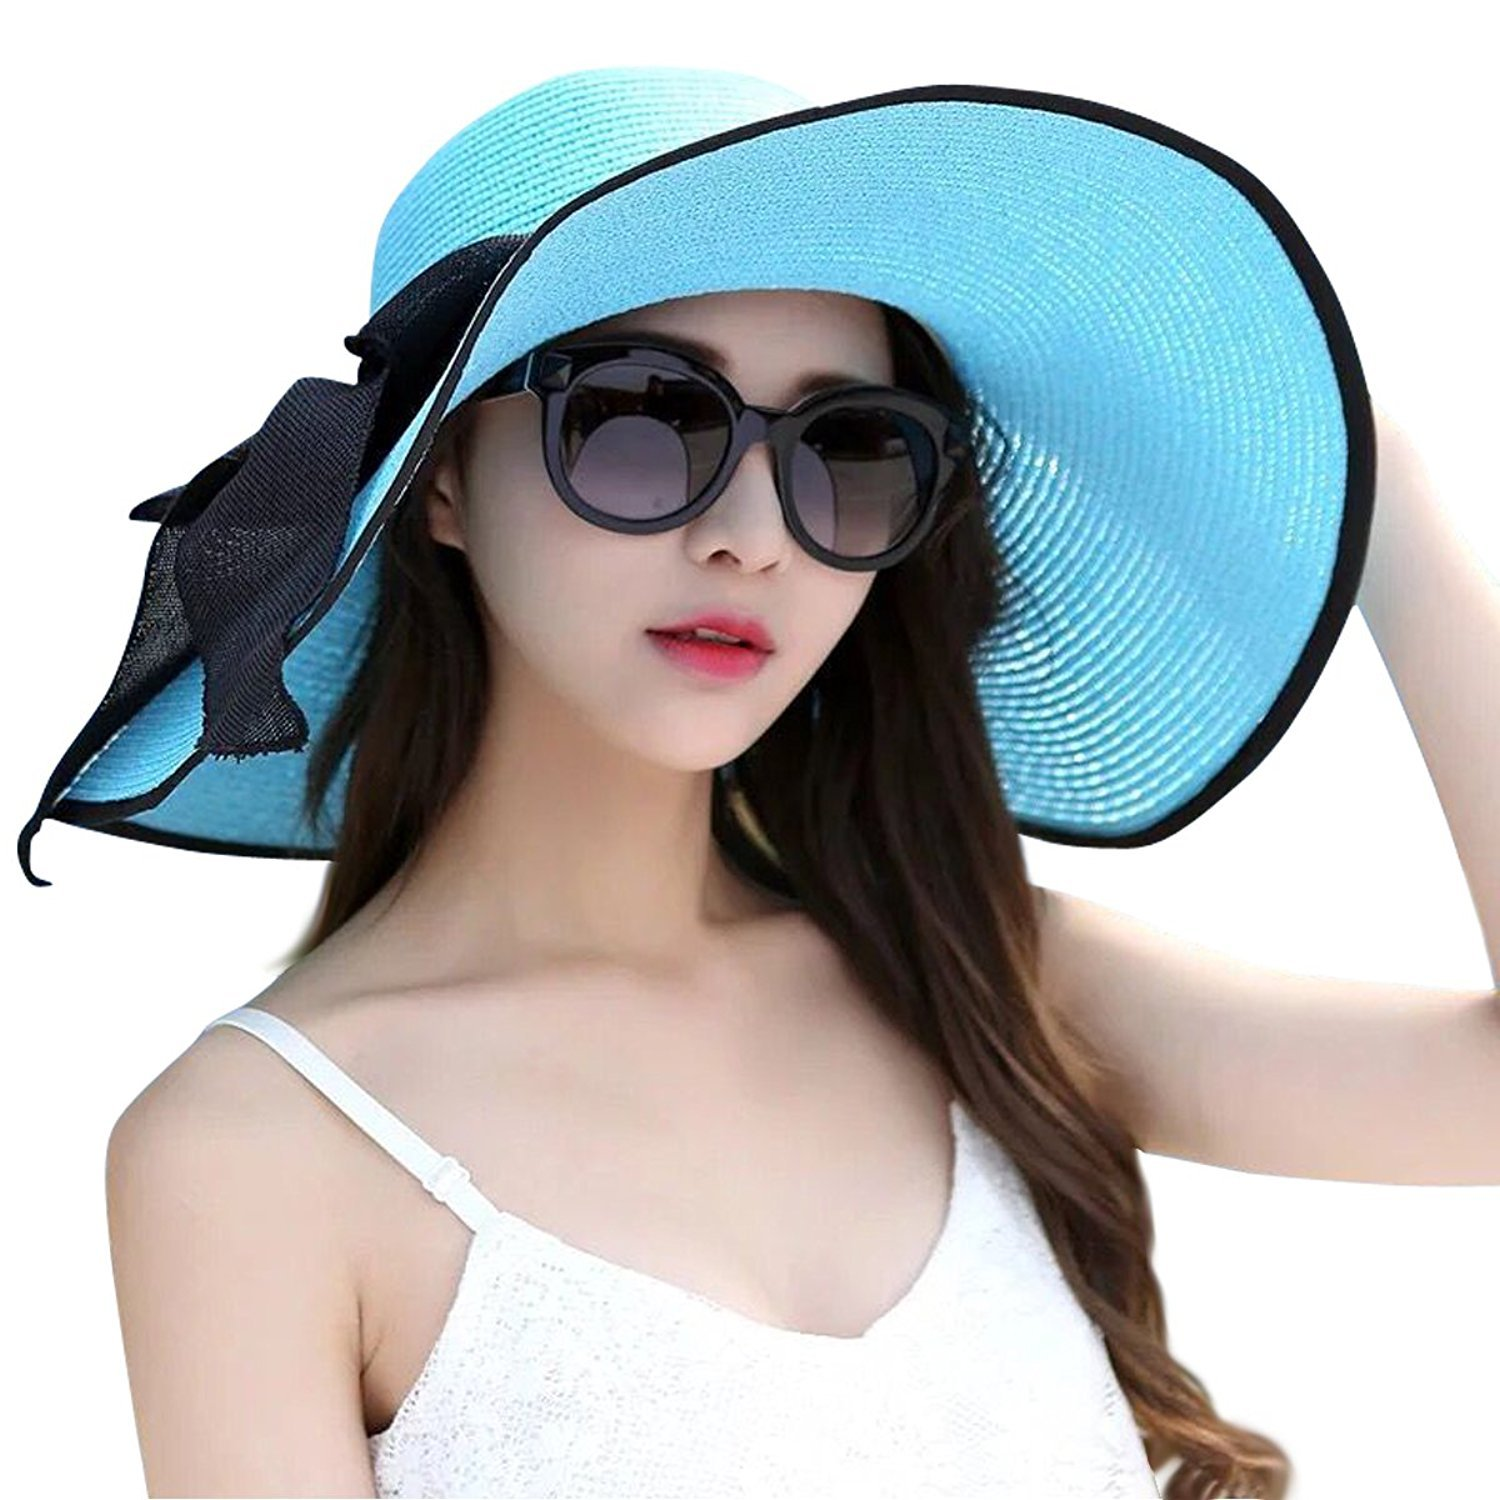 DRESHOW Floppy Beach Hat for Women Large Brim Straw Sun Hats Roll up Packable UPF 50+ HT0011-CO